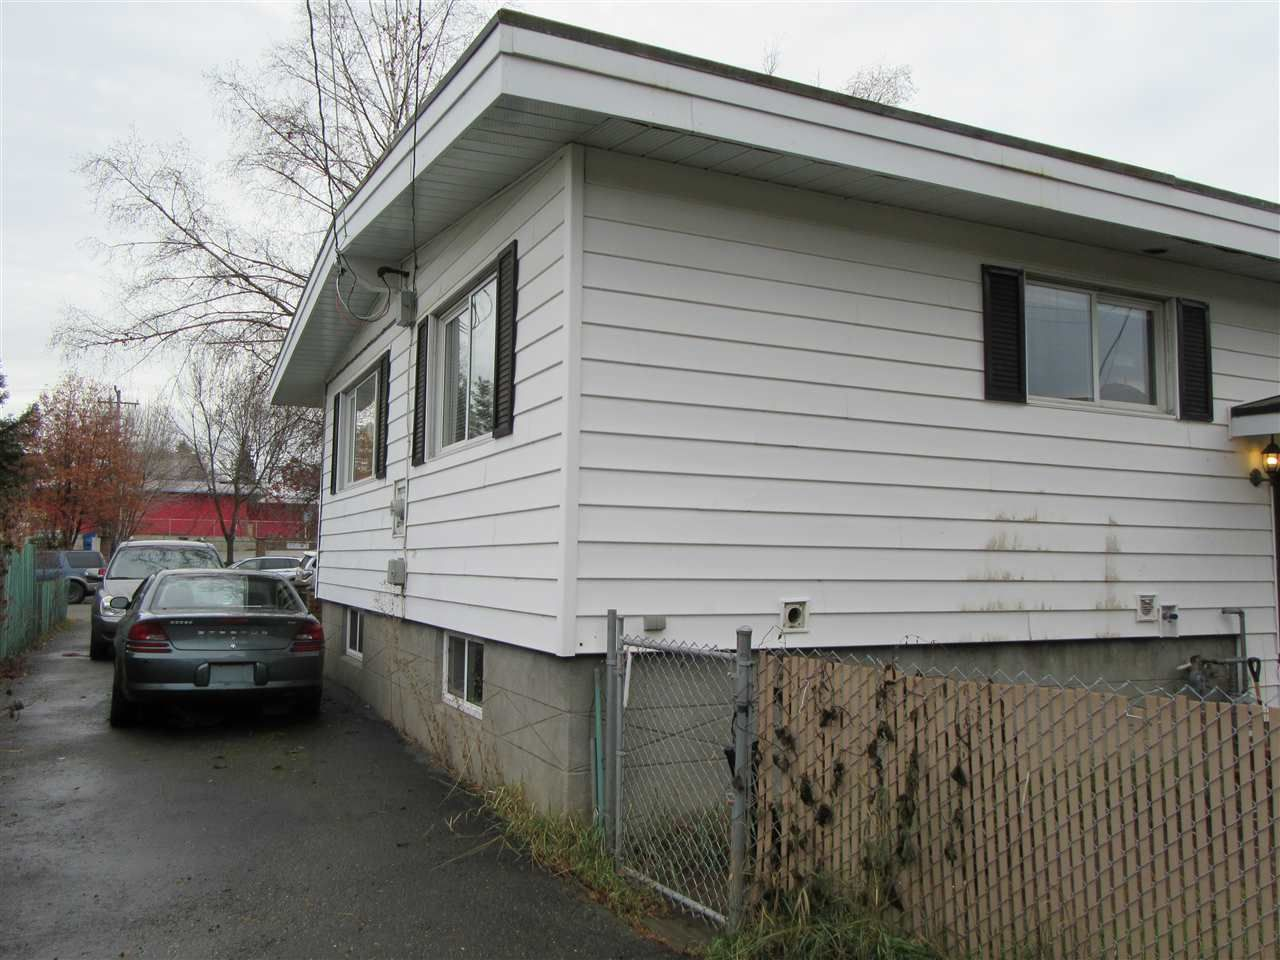 Photo 6: Photos: 1737 REDWOOD Street in Prince George: Van Bow House for sale (PG City Central (Zone 72))  : MLS®# R2417839